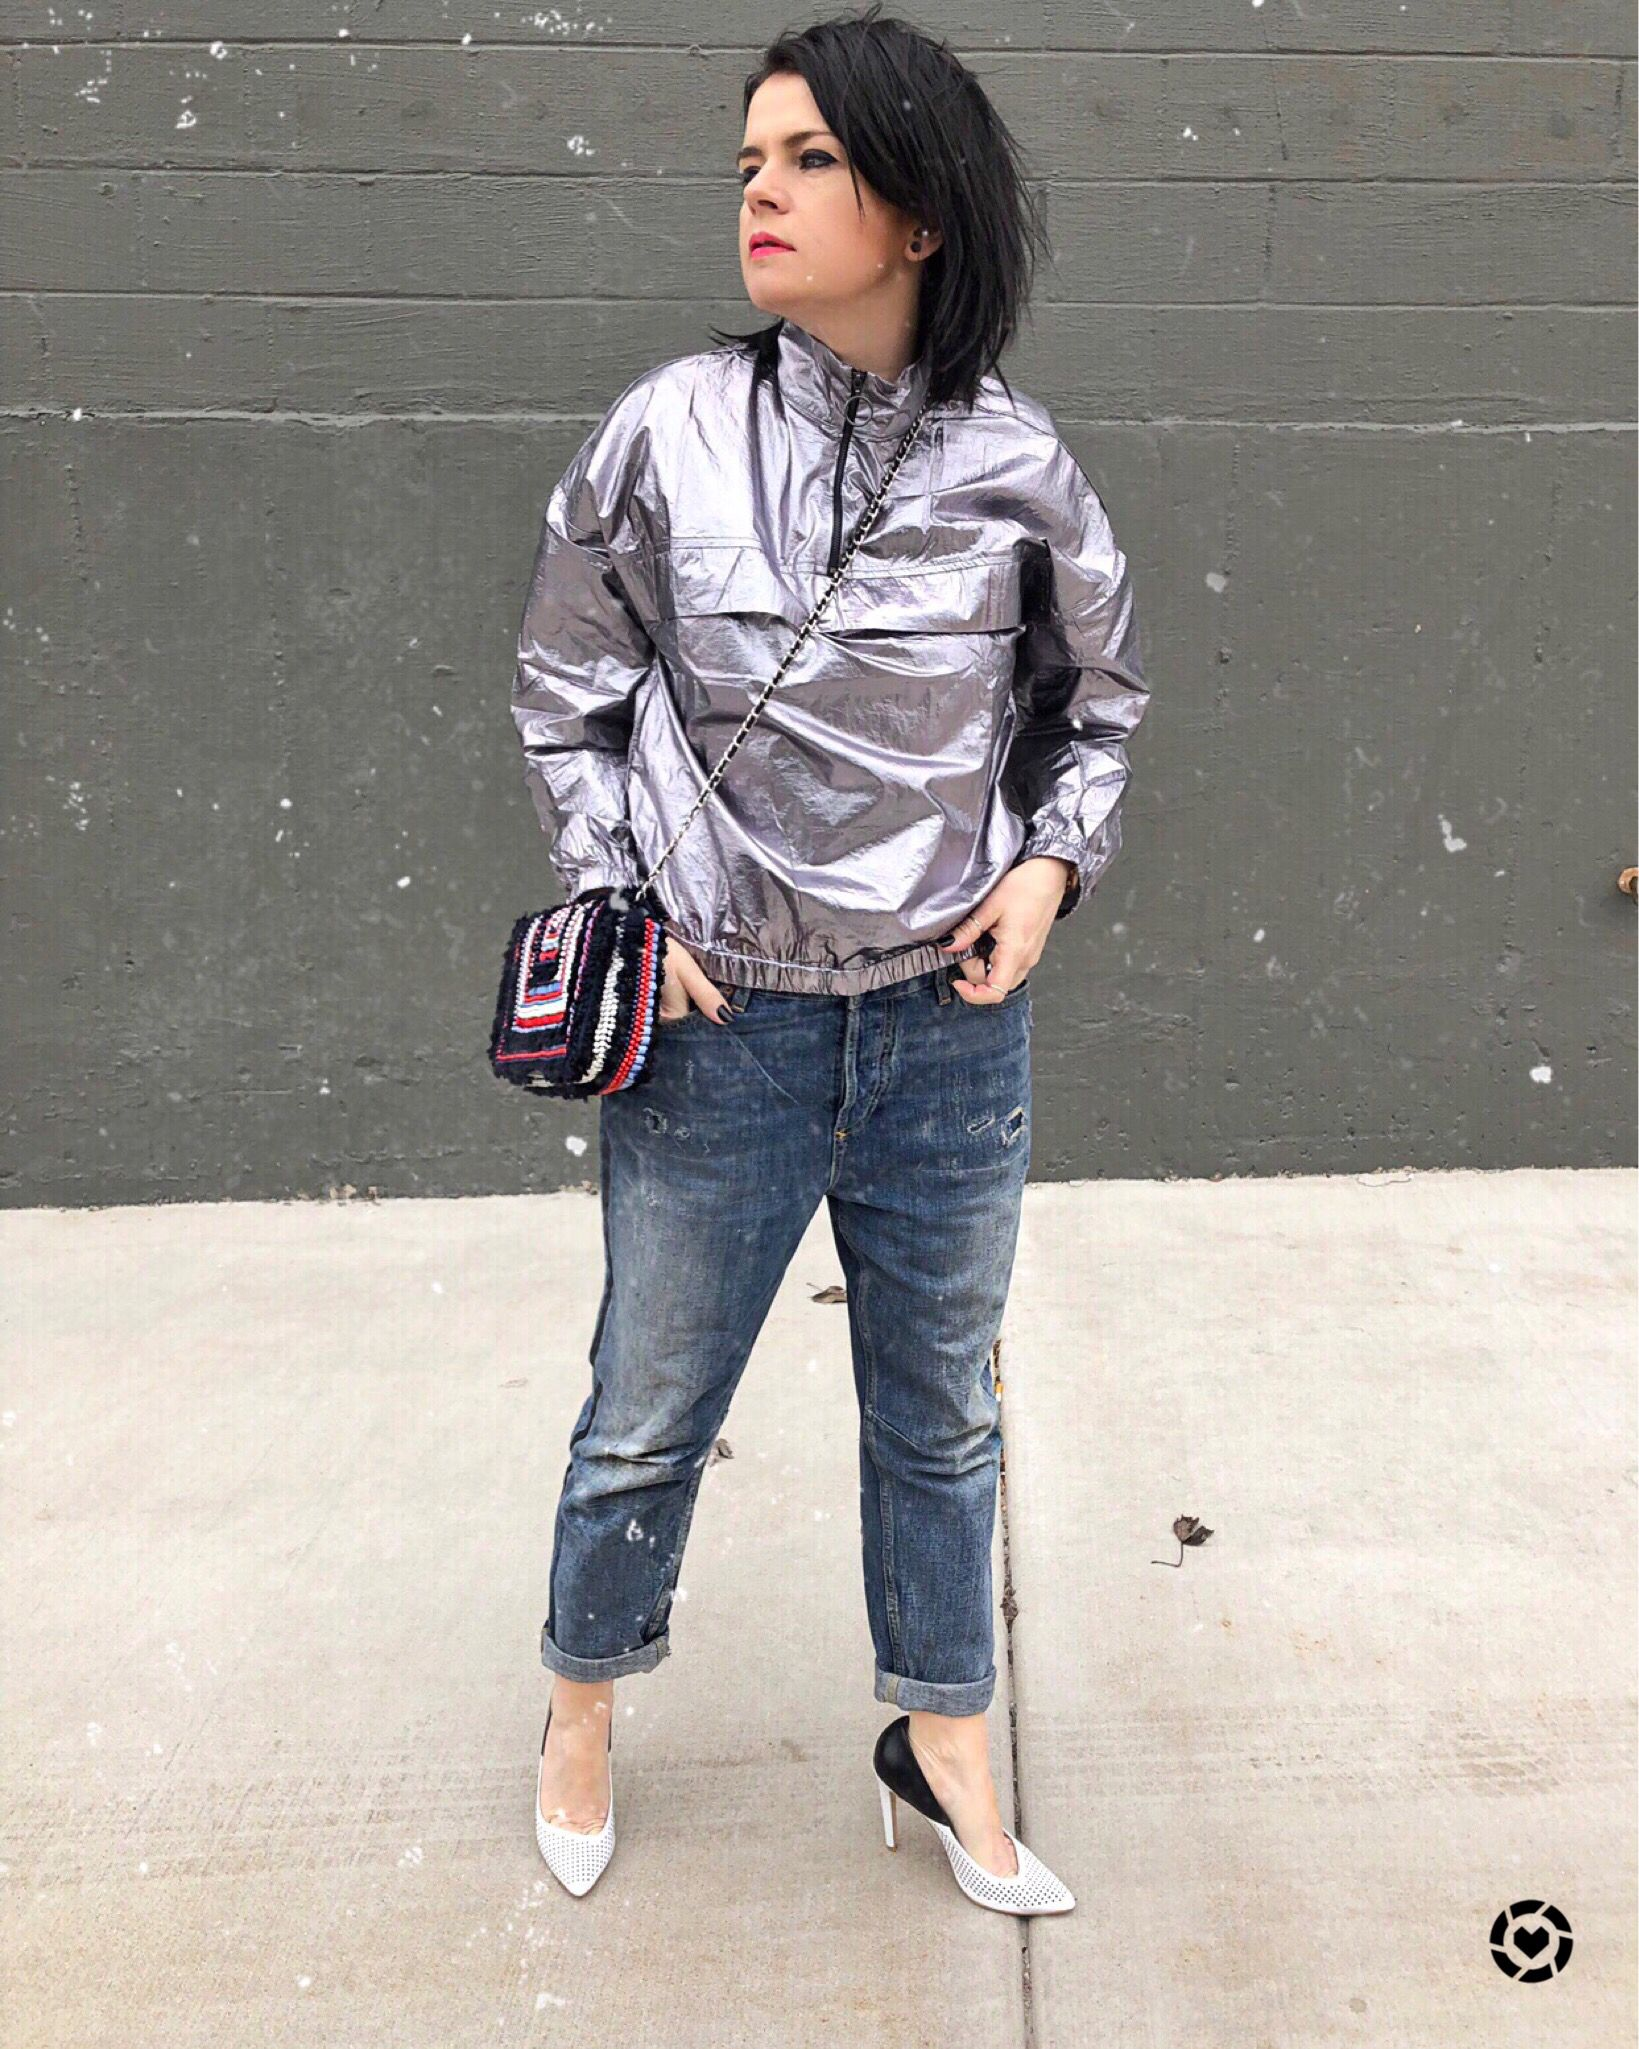 Silver Metallic Jacket With High Neck Red Lipstick Makeup